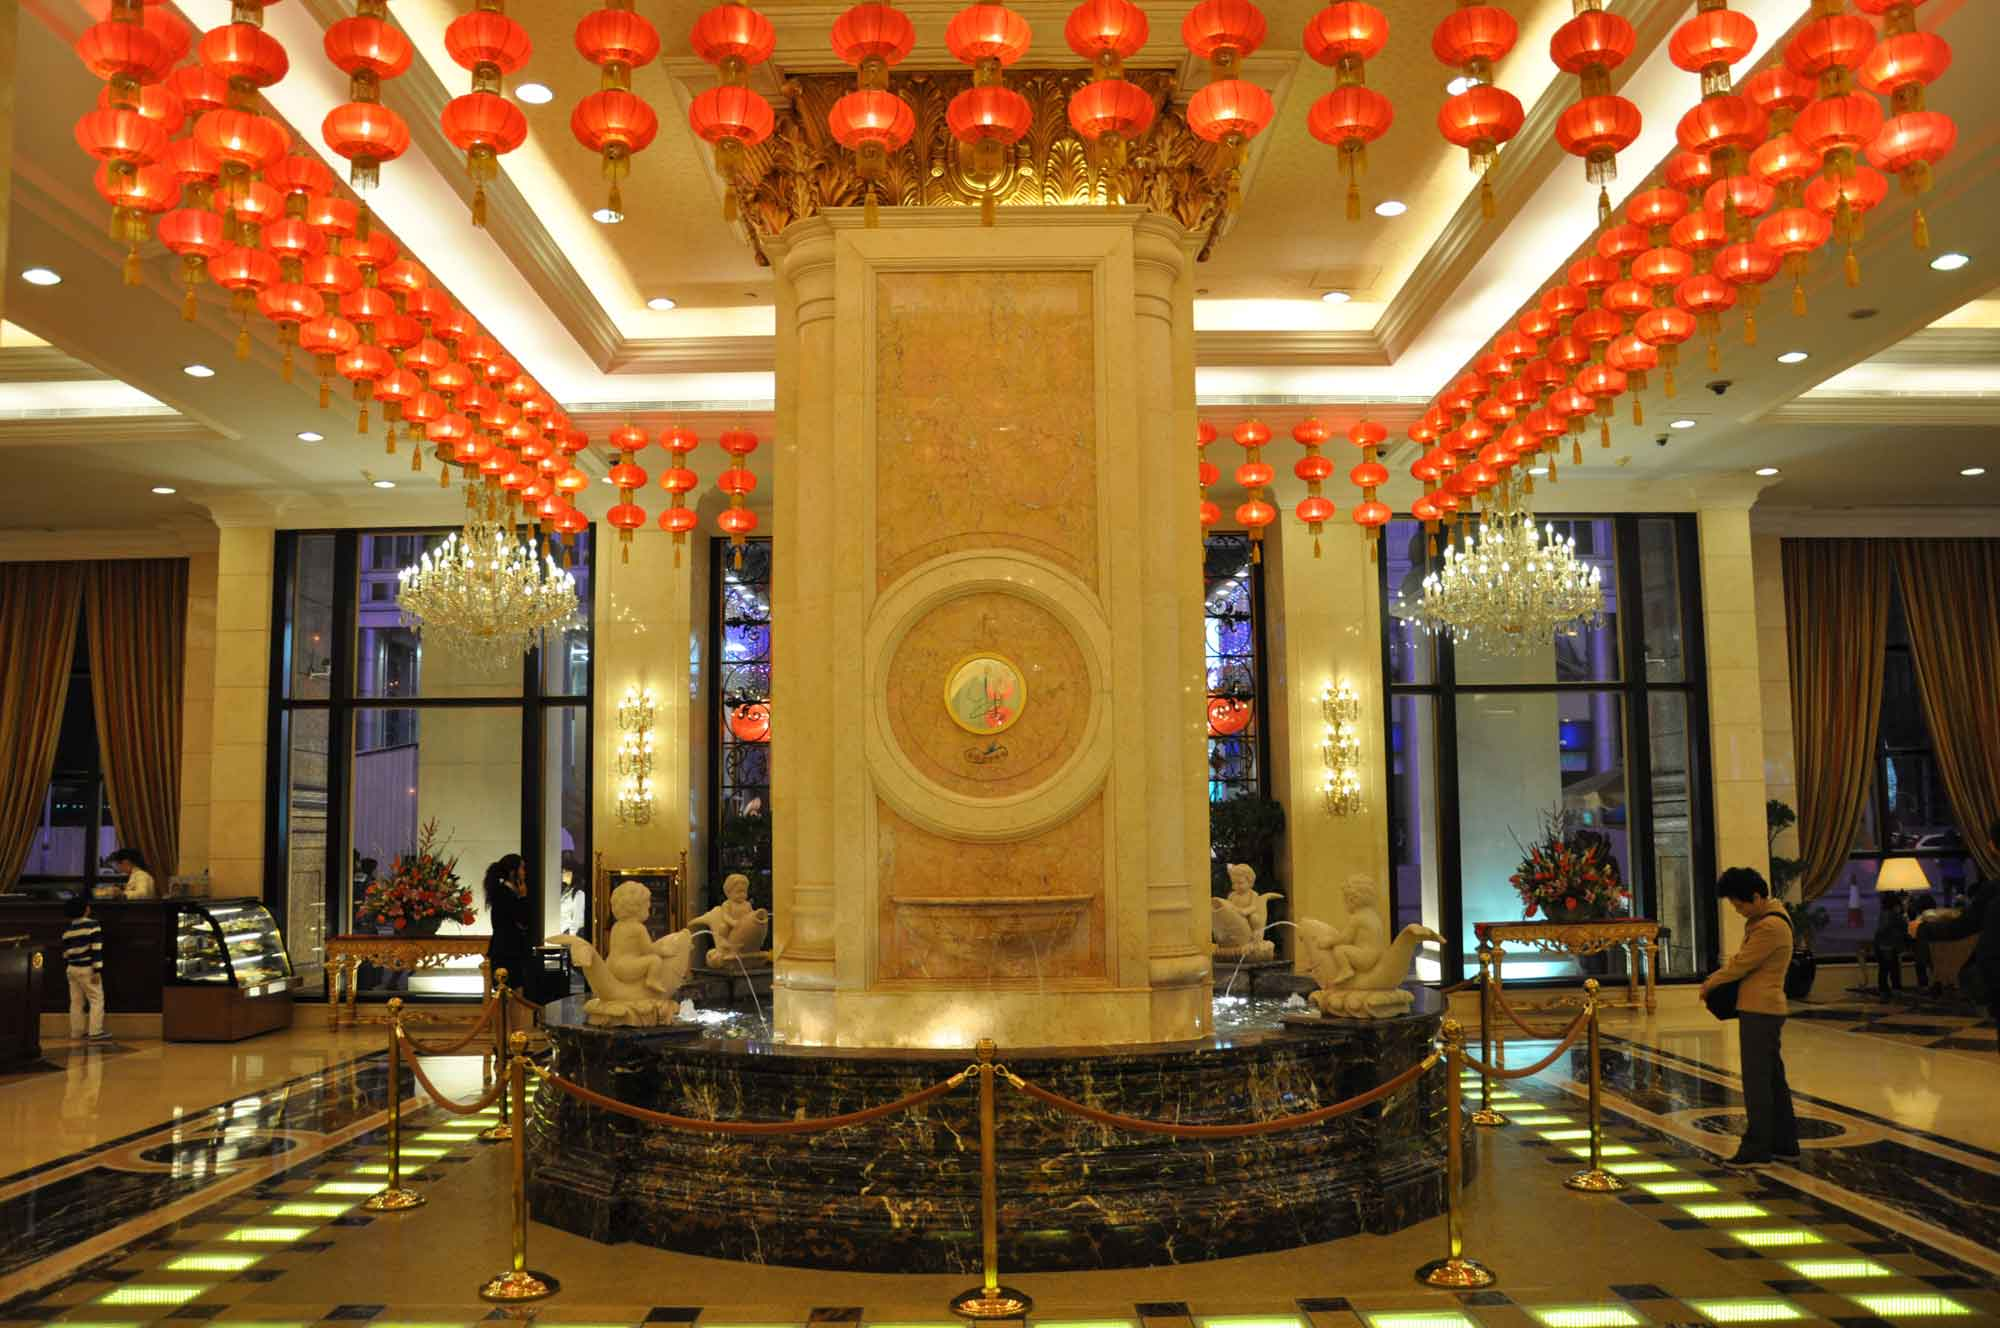 Grand Emperor Hotel lobby with red lamps